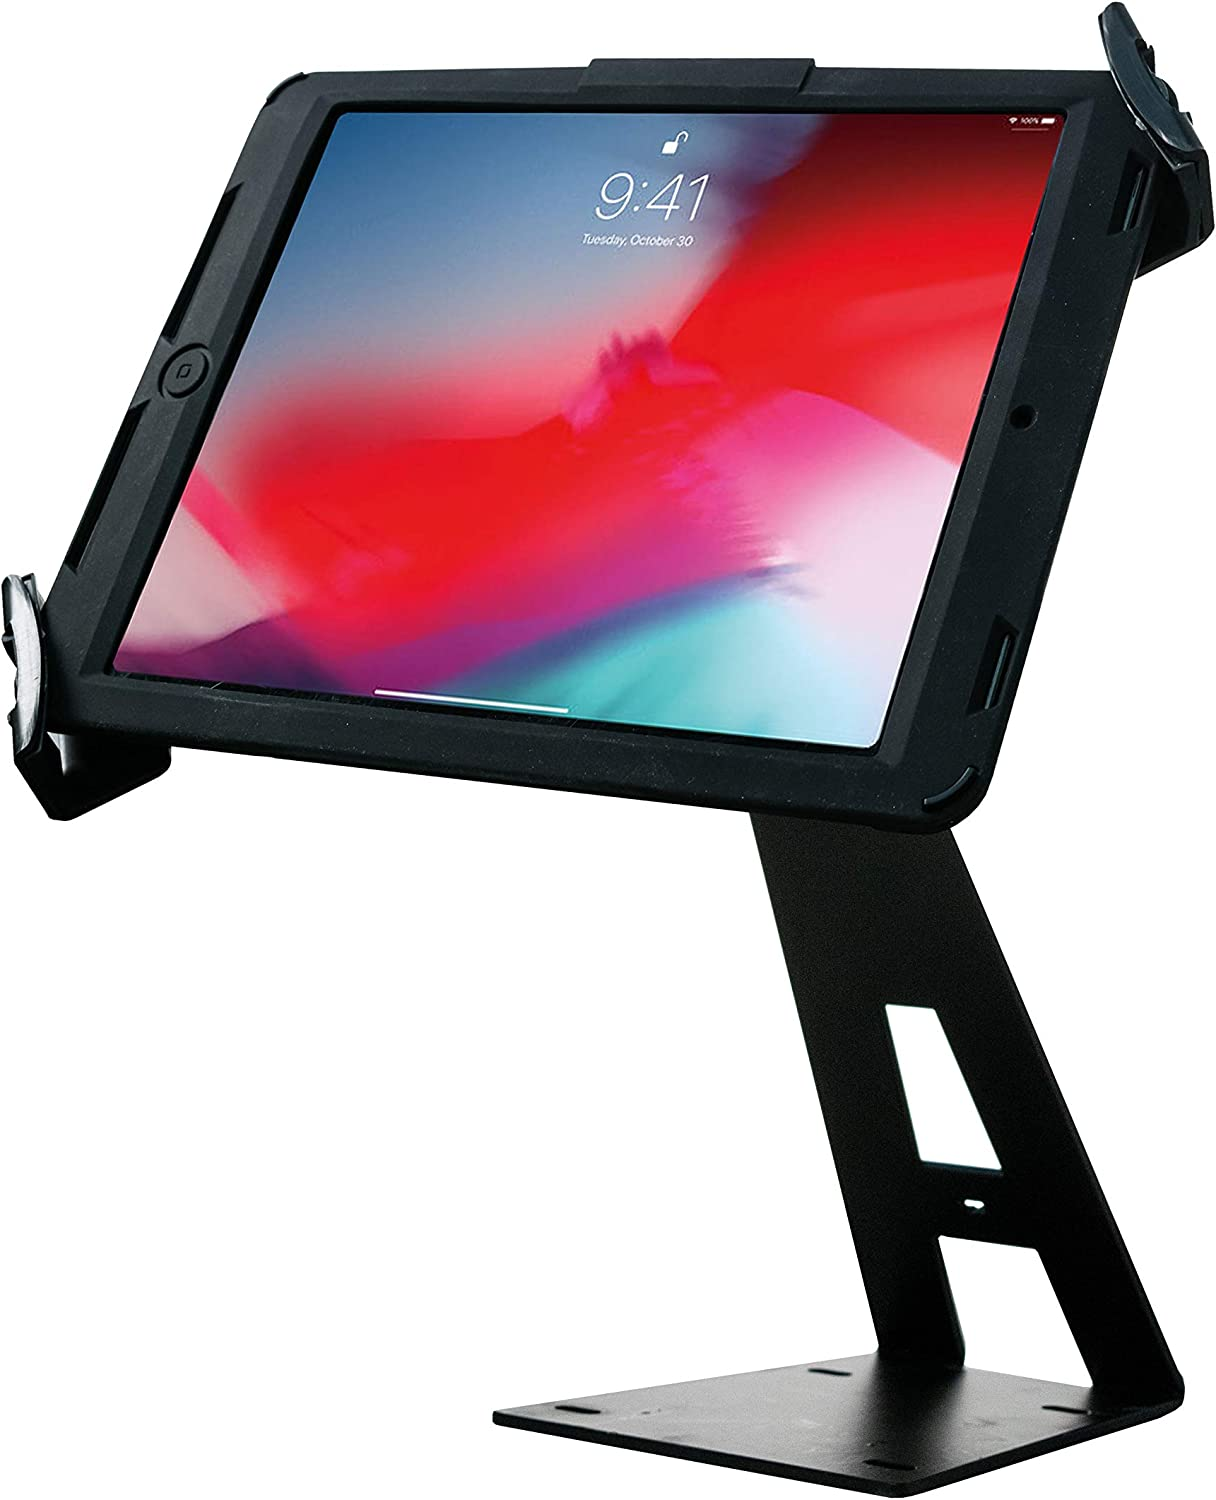 """CTA Digital: Angle-Adjustable Locking Desktop Stand for 7""""-14 Inch Tablets, Including iPad 10.2-Inch (7th Gen,), iPad Air 3, iPad Mini 5, 12.9-Inch iPad Pro, 11-Inch iPad Pro and More"""